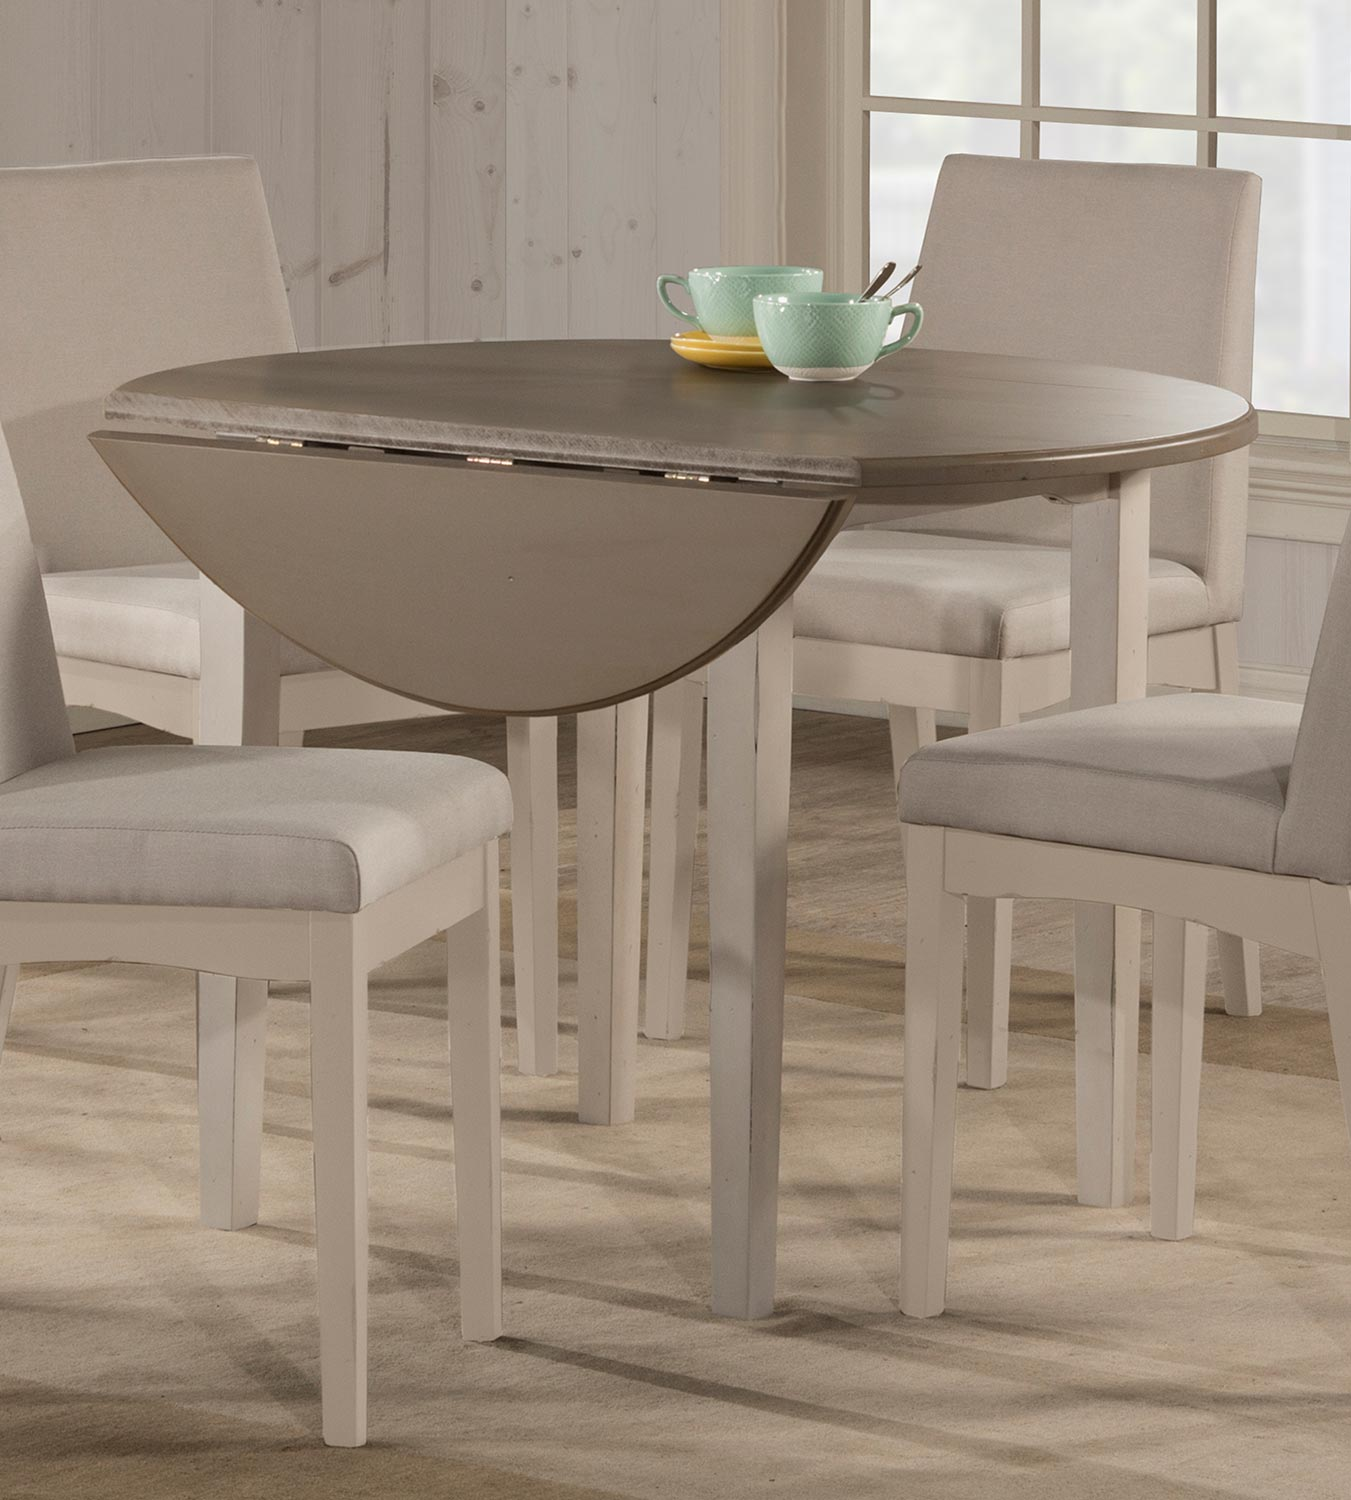 Hillsdale Clarion Round Drop Leaf Dining Table - Gray/White